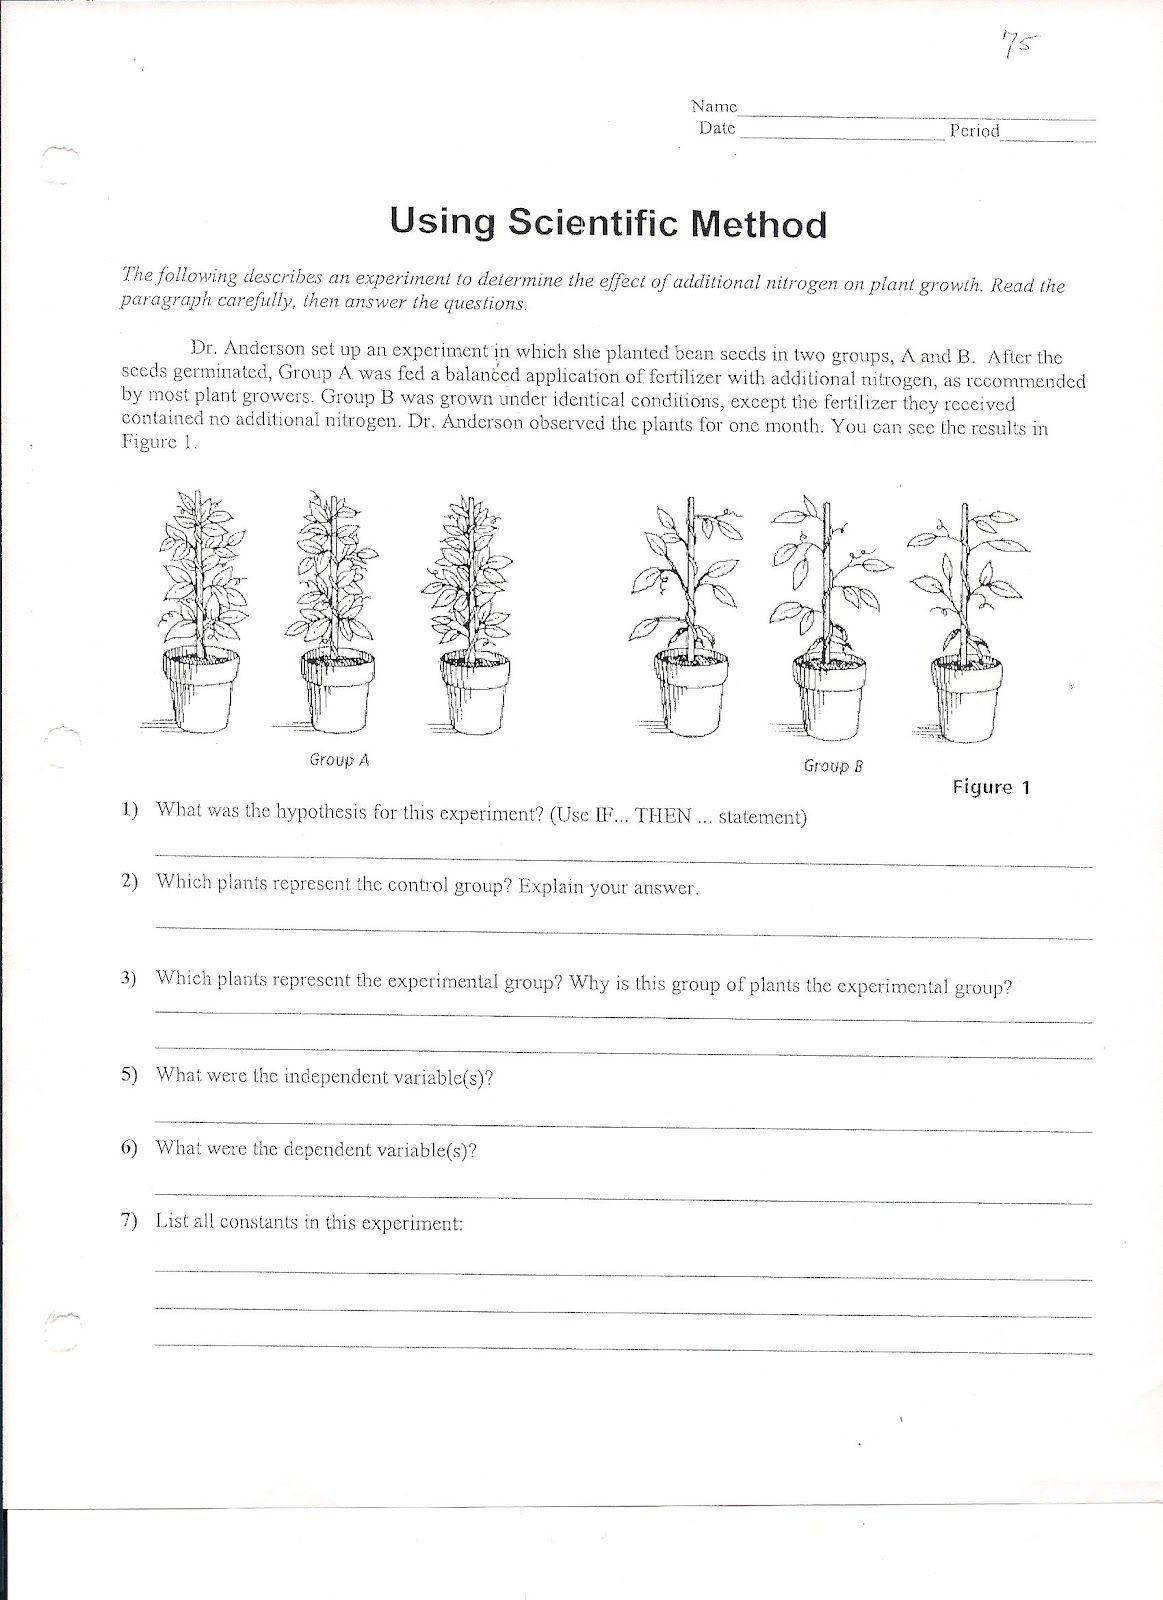 Using Scientific Method Worksheet 1 163 1 600 Pixels